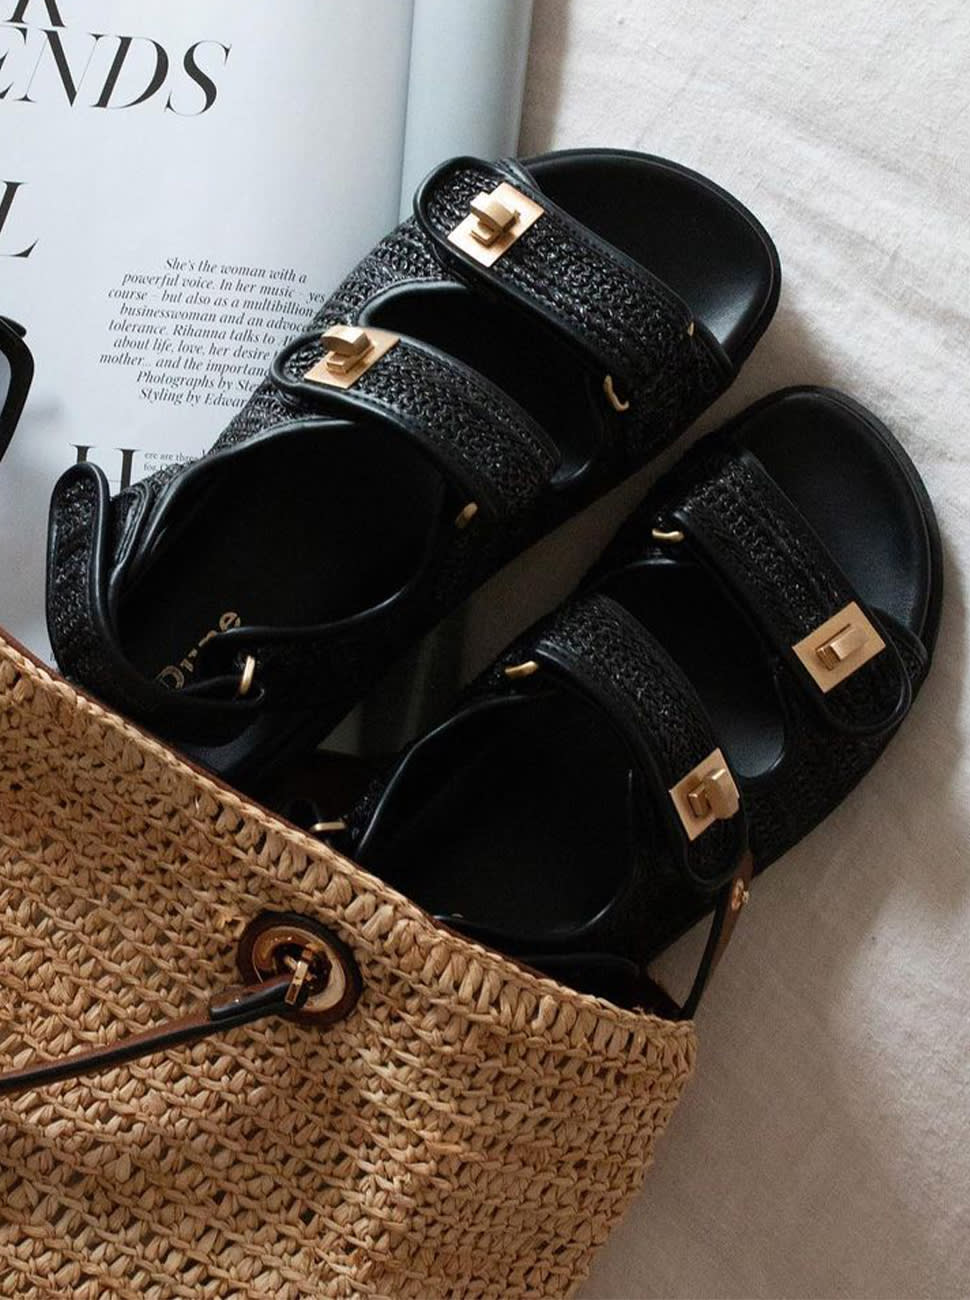 Pair of Lockstock sandals in a straw bag